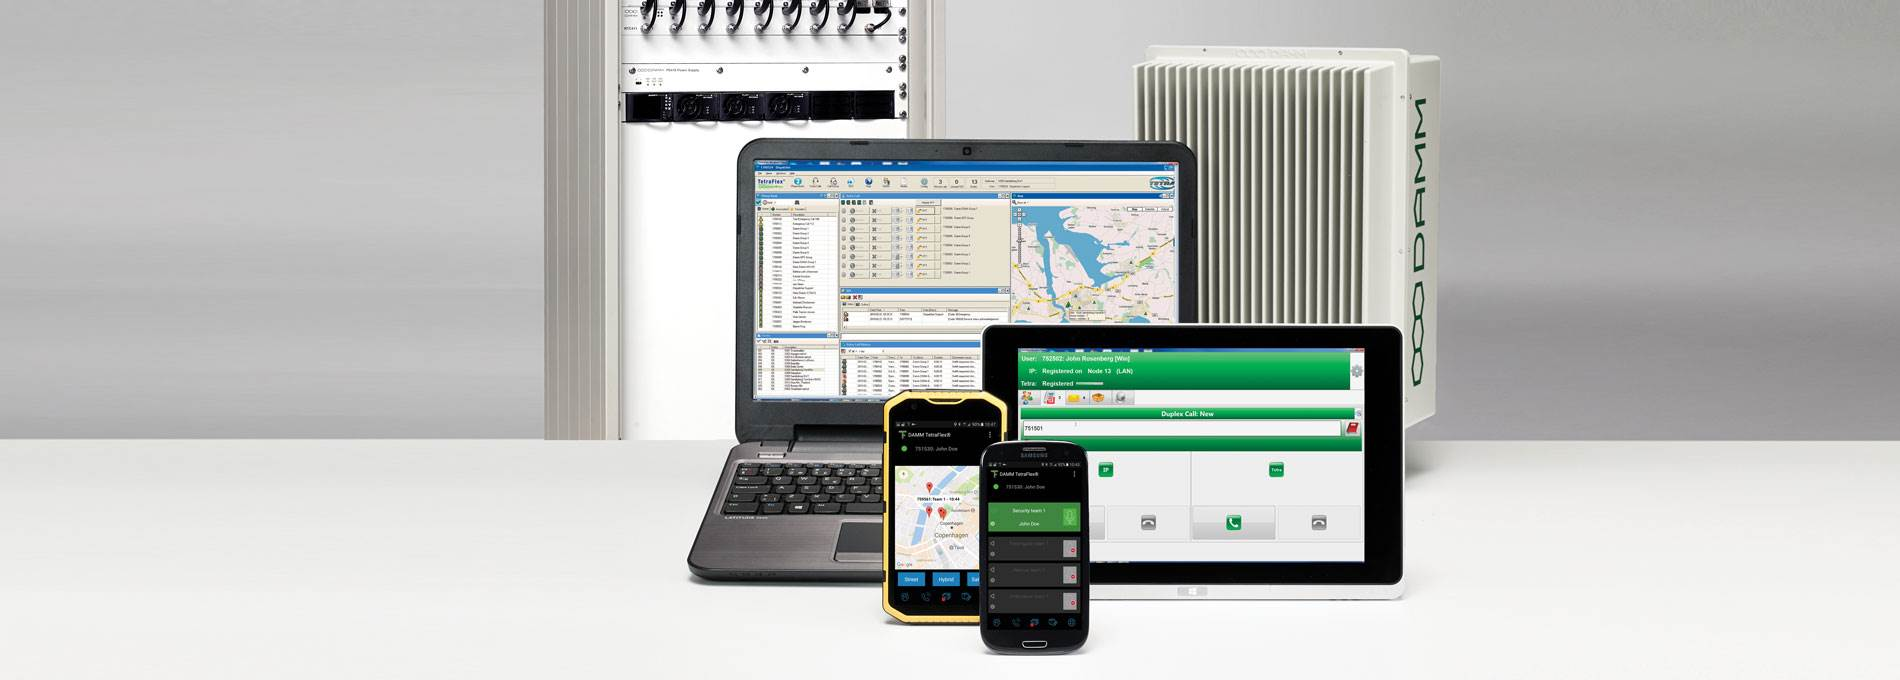 DAMM product portfolio includes infrastructure applications and radios